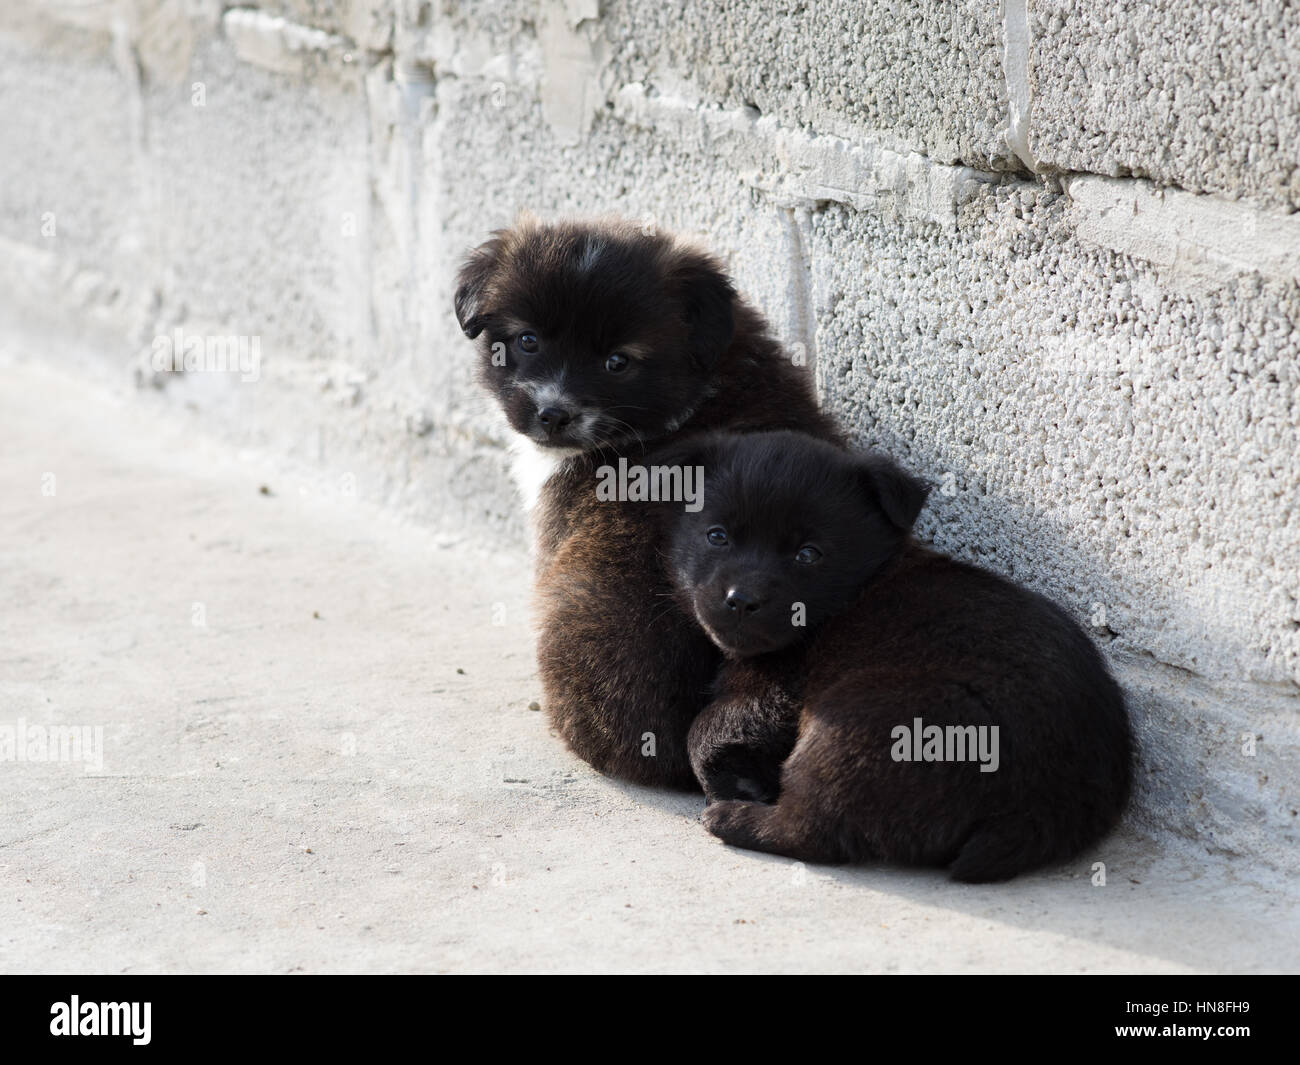 Very cute black puppies Beautiful puppies little puppies Stock